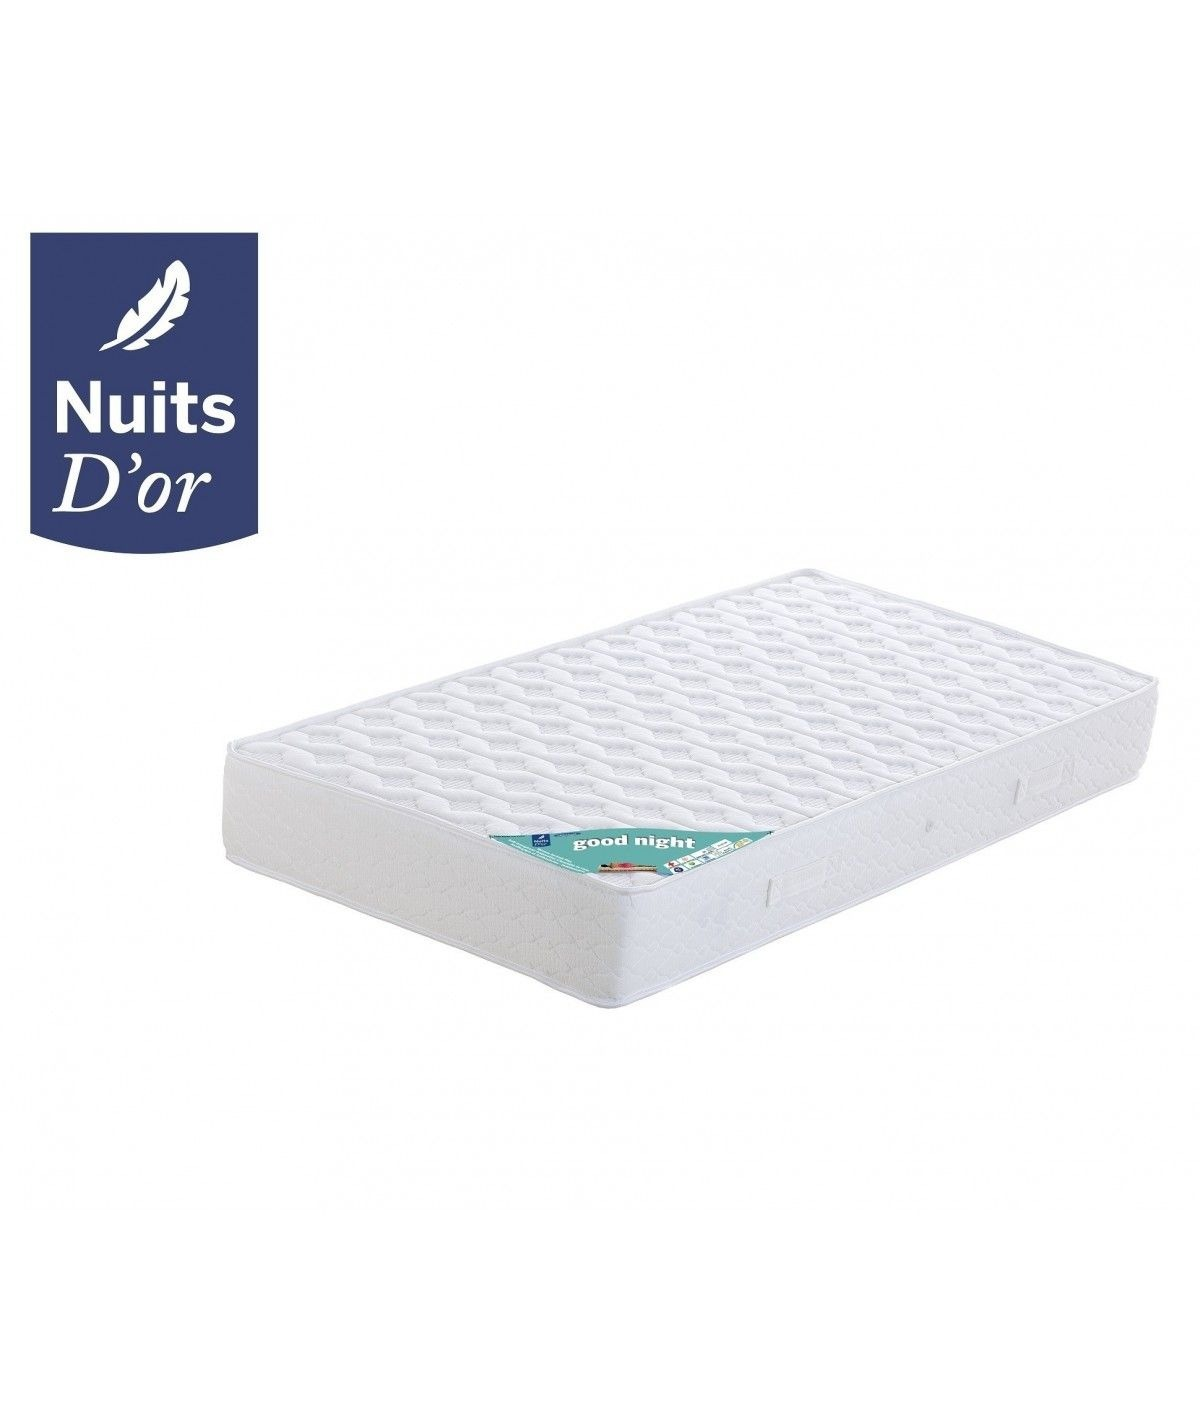 Goodnight Mattress 70x190 Farm Density 35 Kg / m3 - 21 Cm - Orthopedic + Memory Pillow Value 89